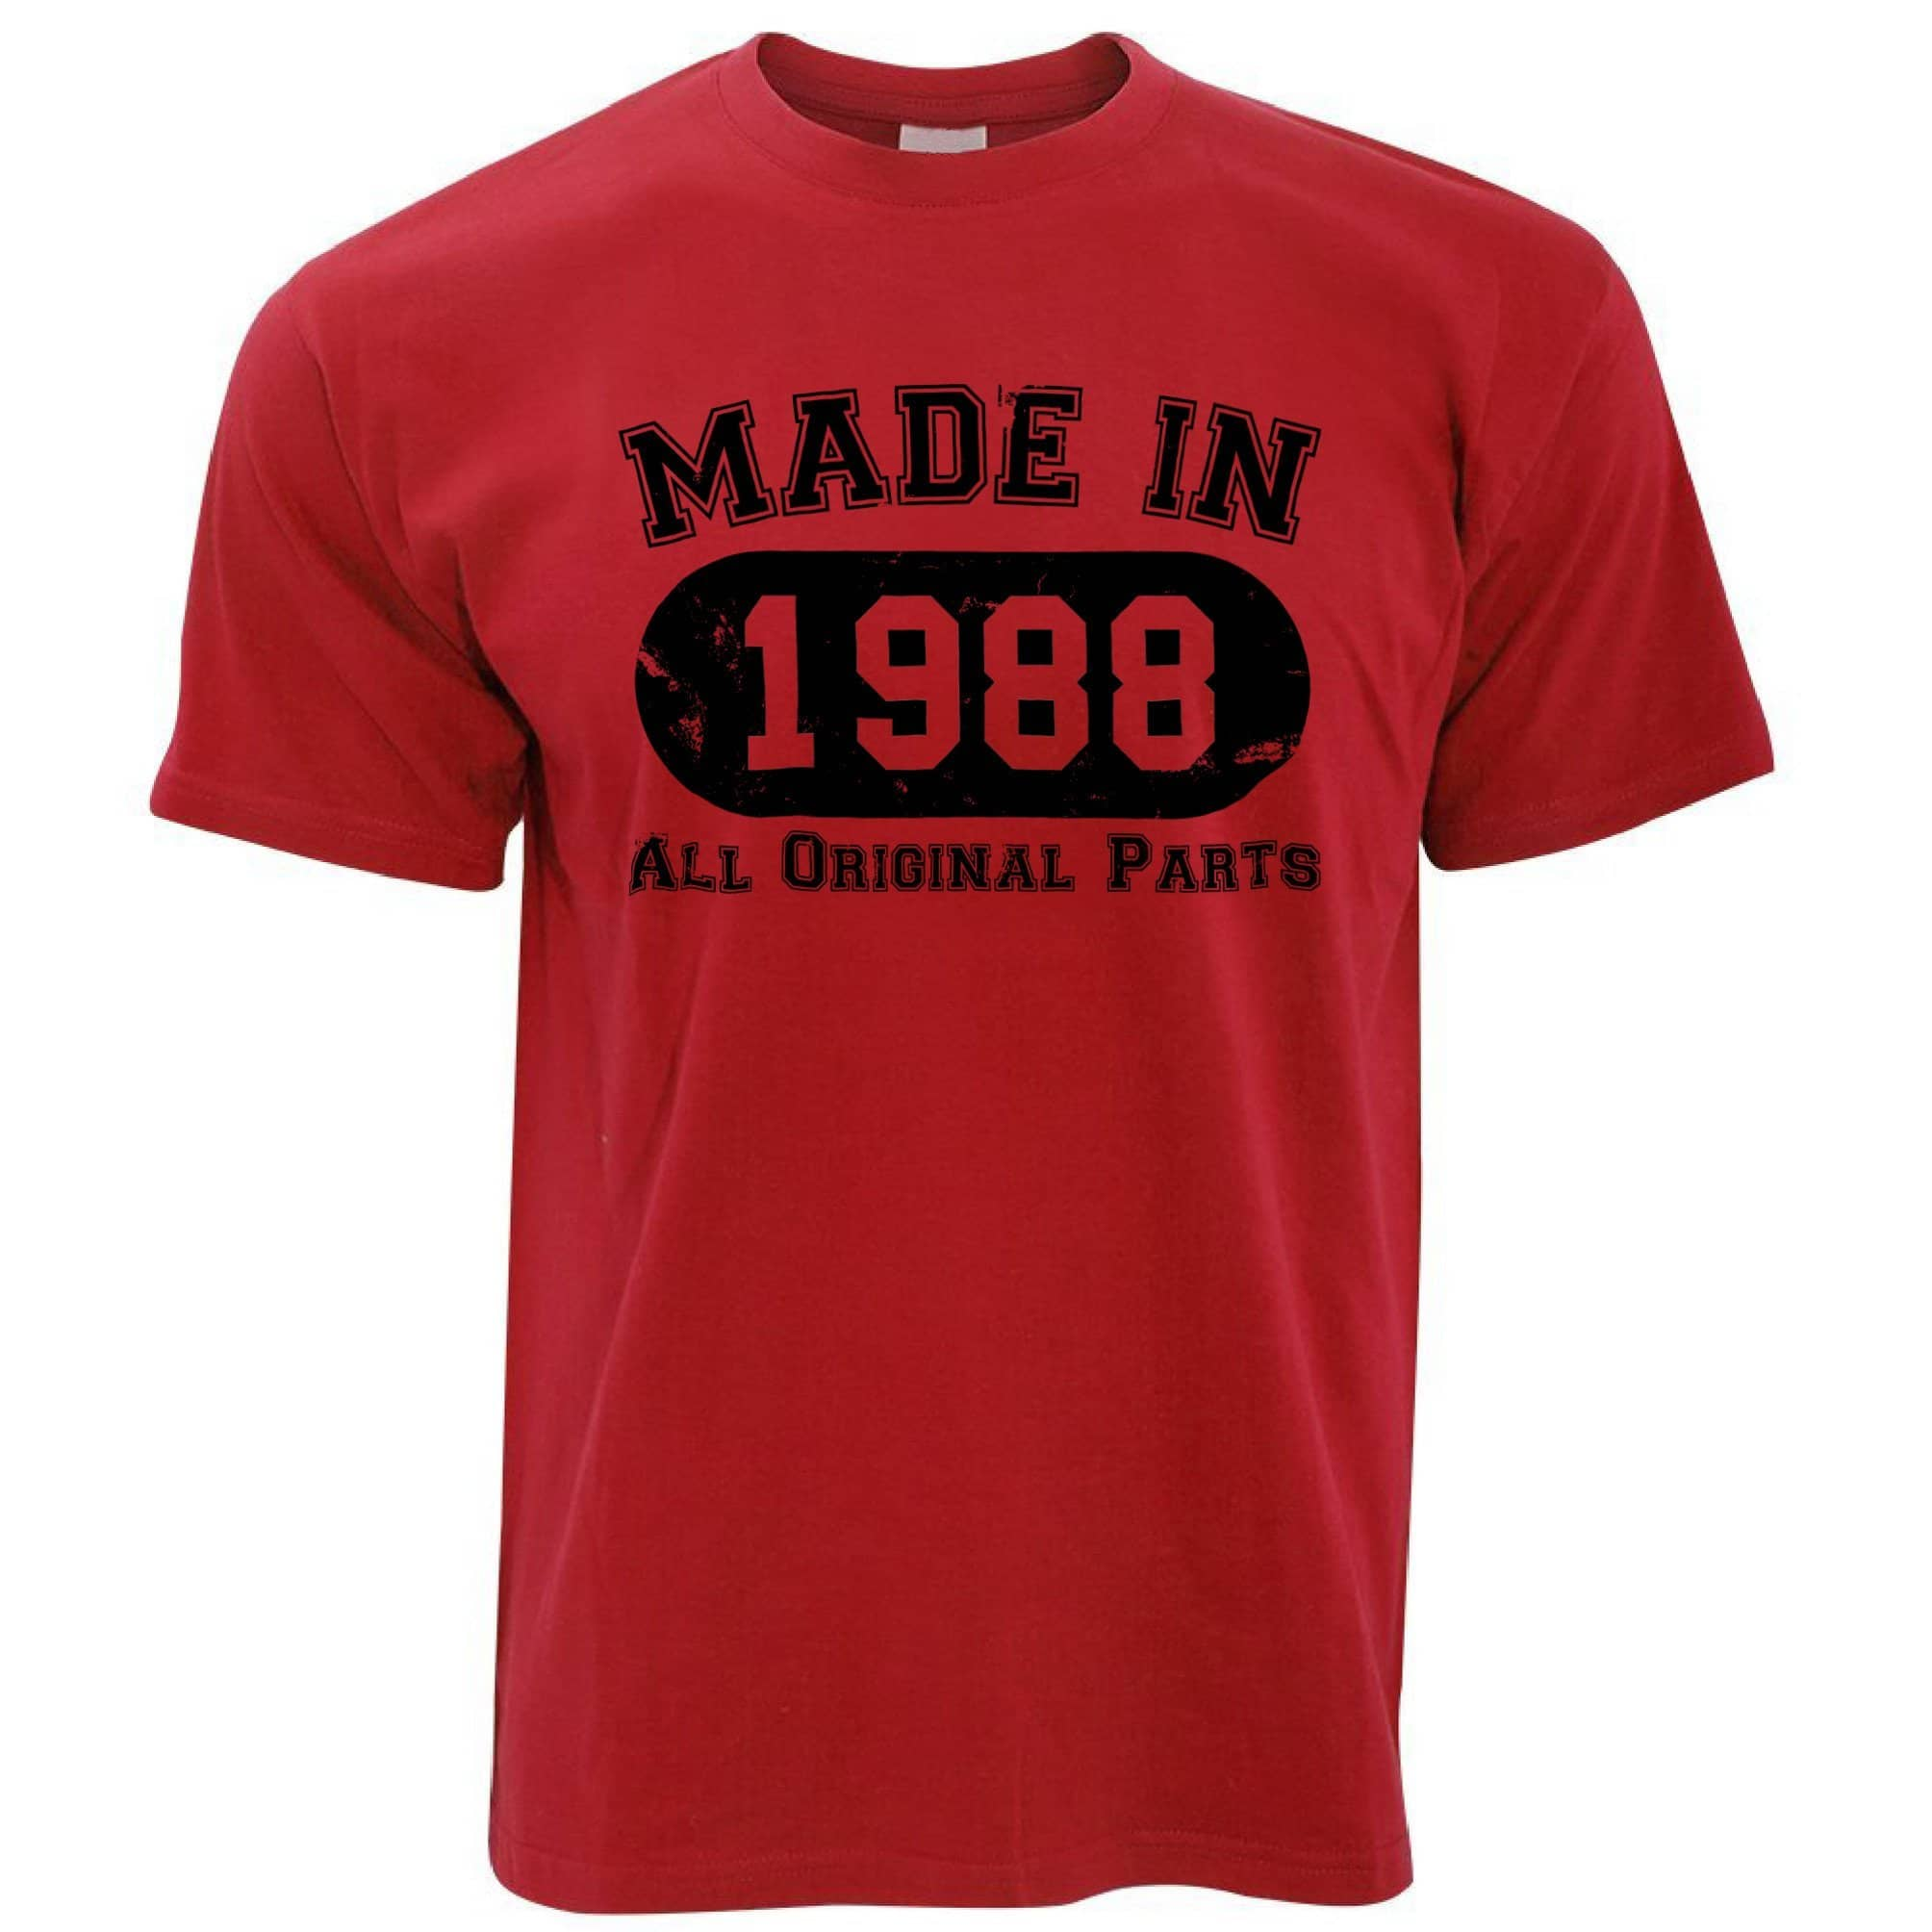 Made in 1988 All Original Parts Mens T-Shirt [Distressed]